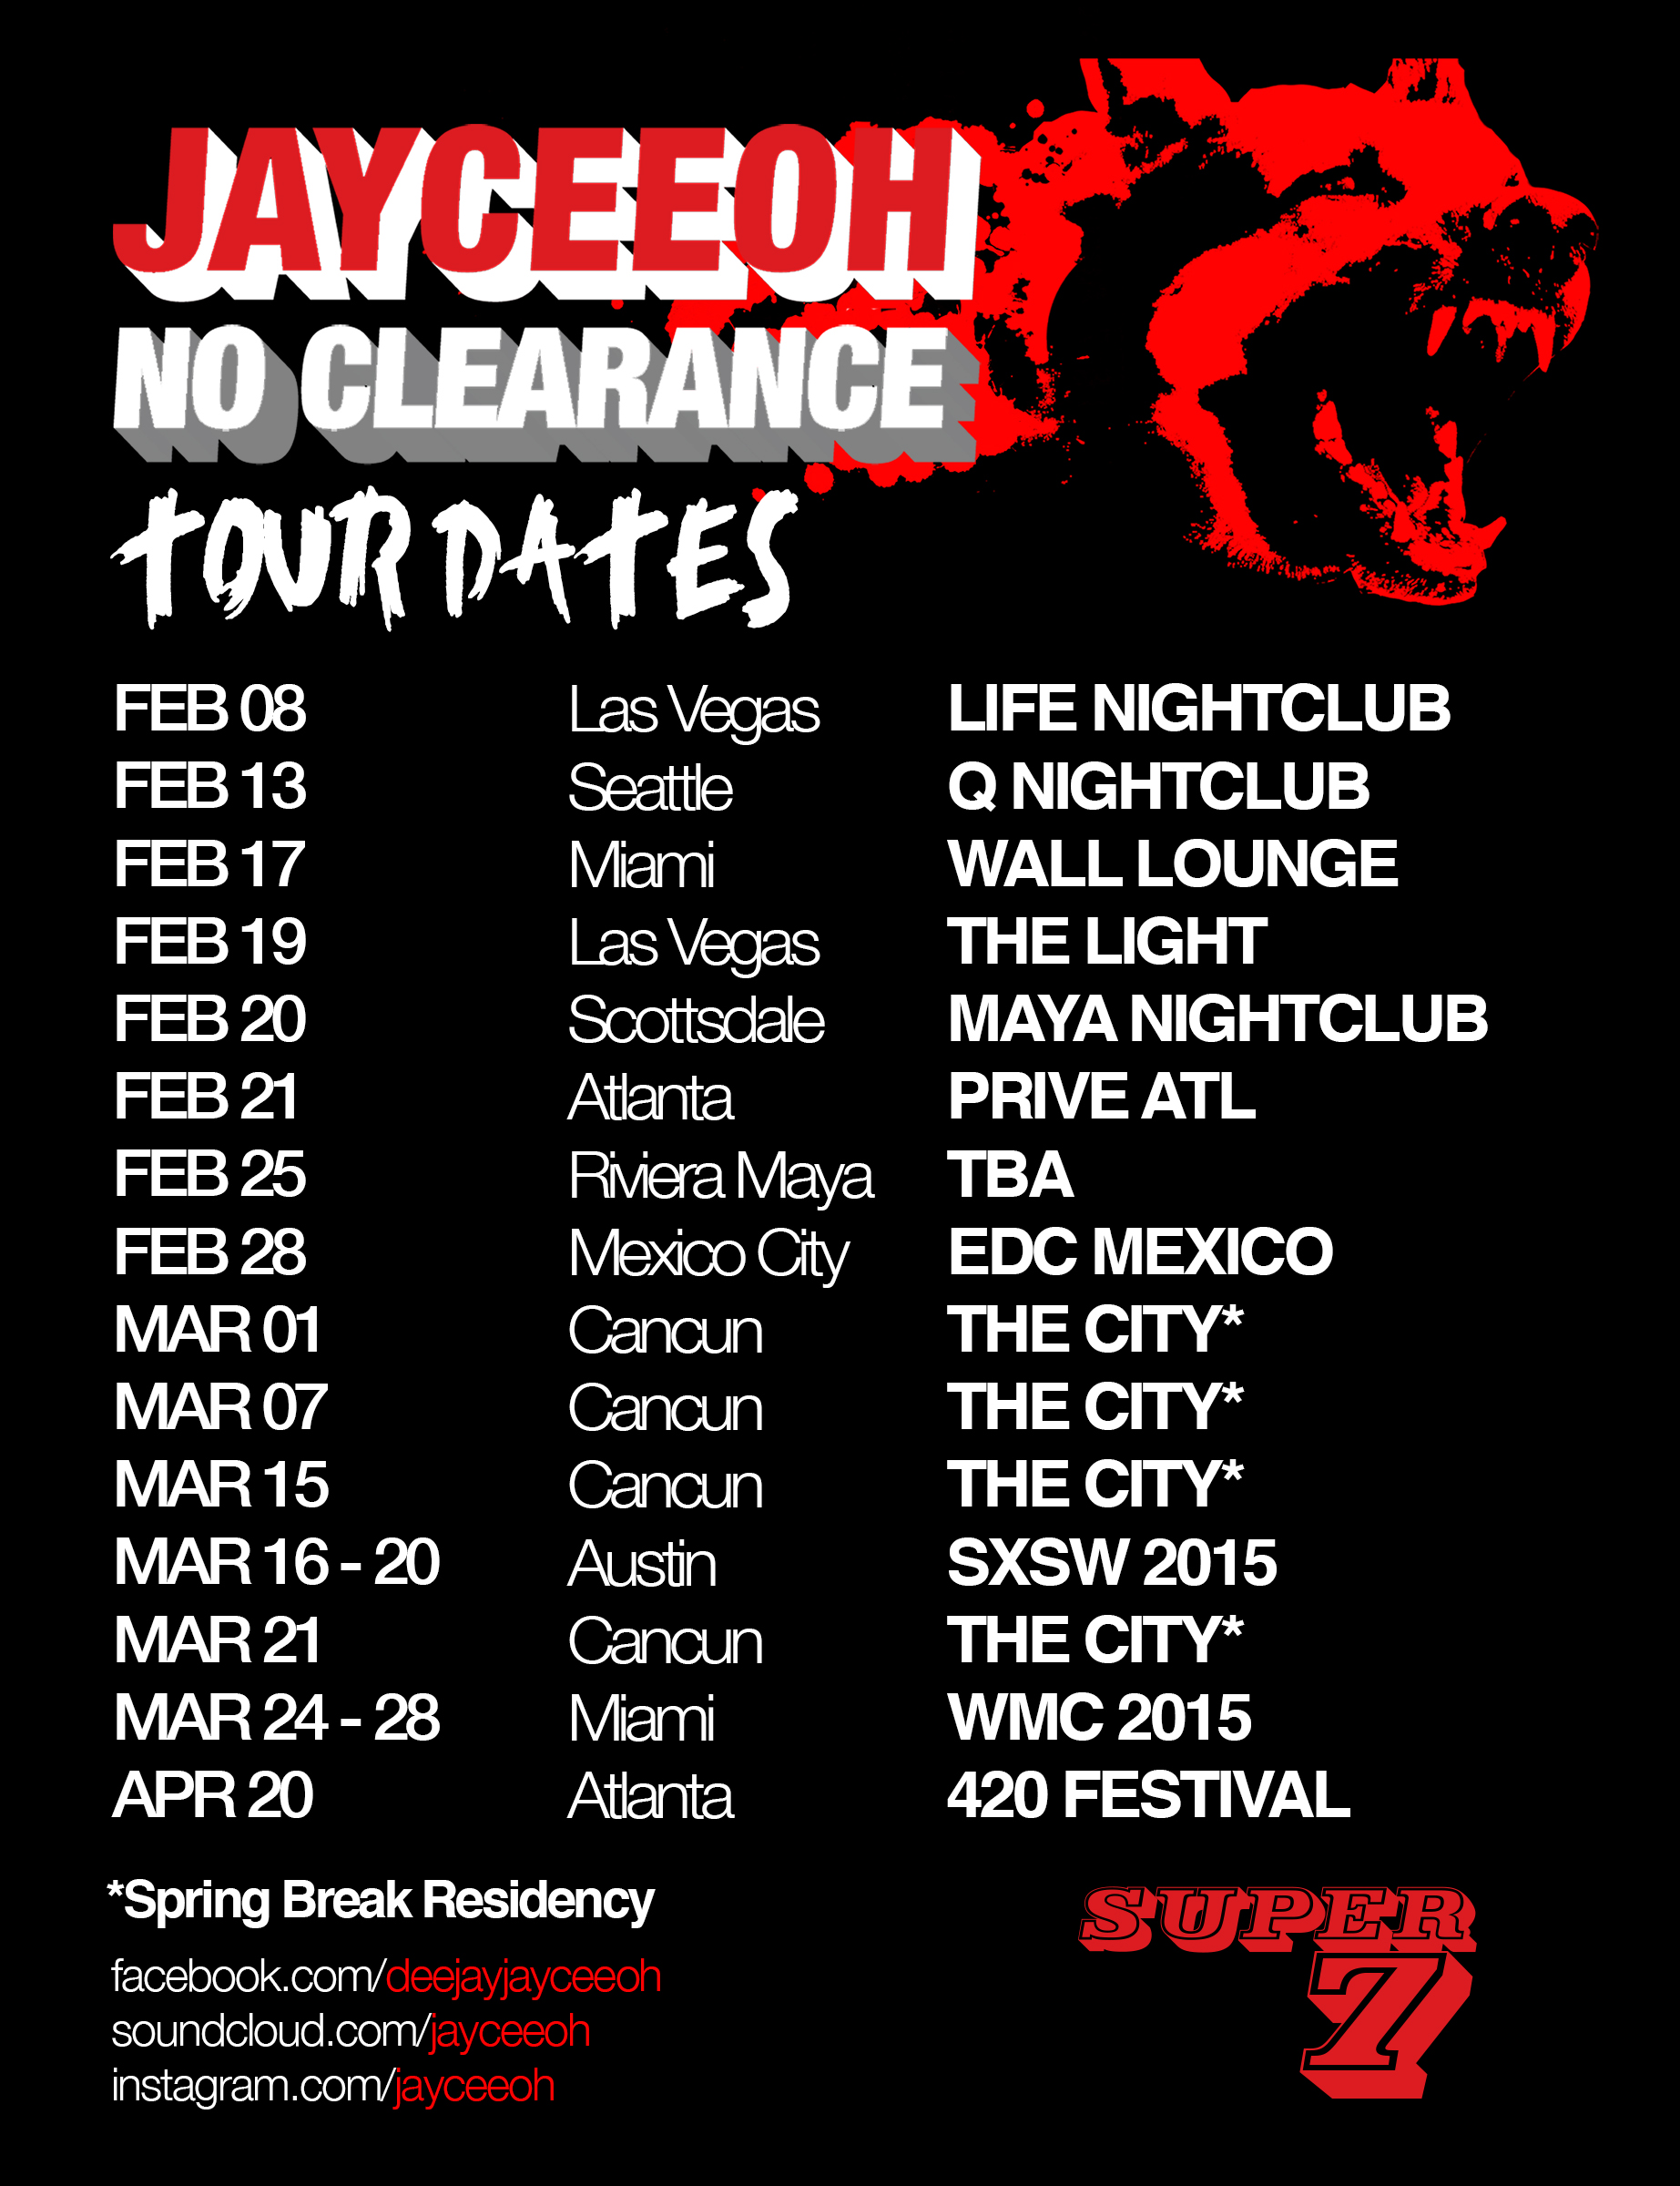 no clearance tour poster 2.10 update